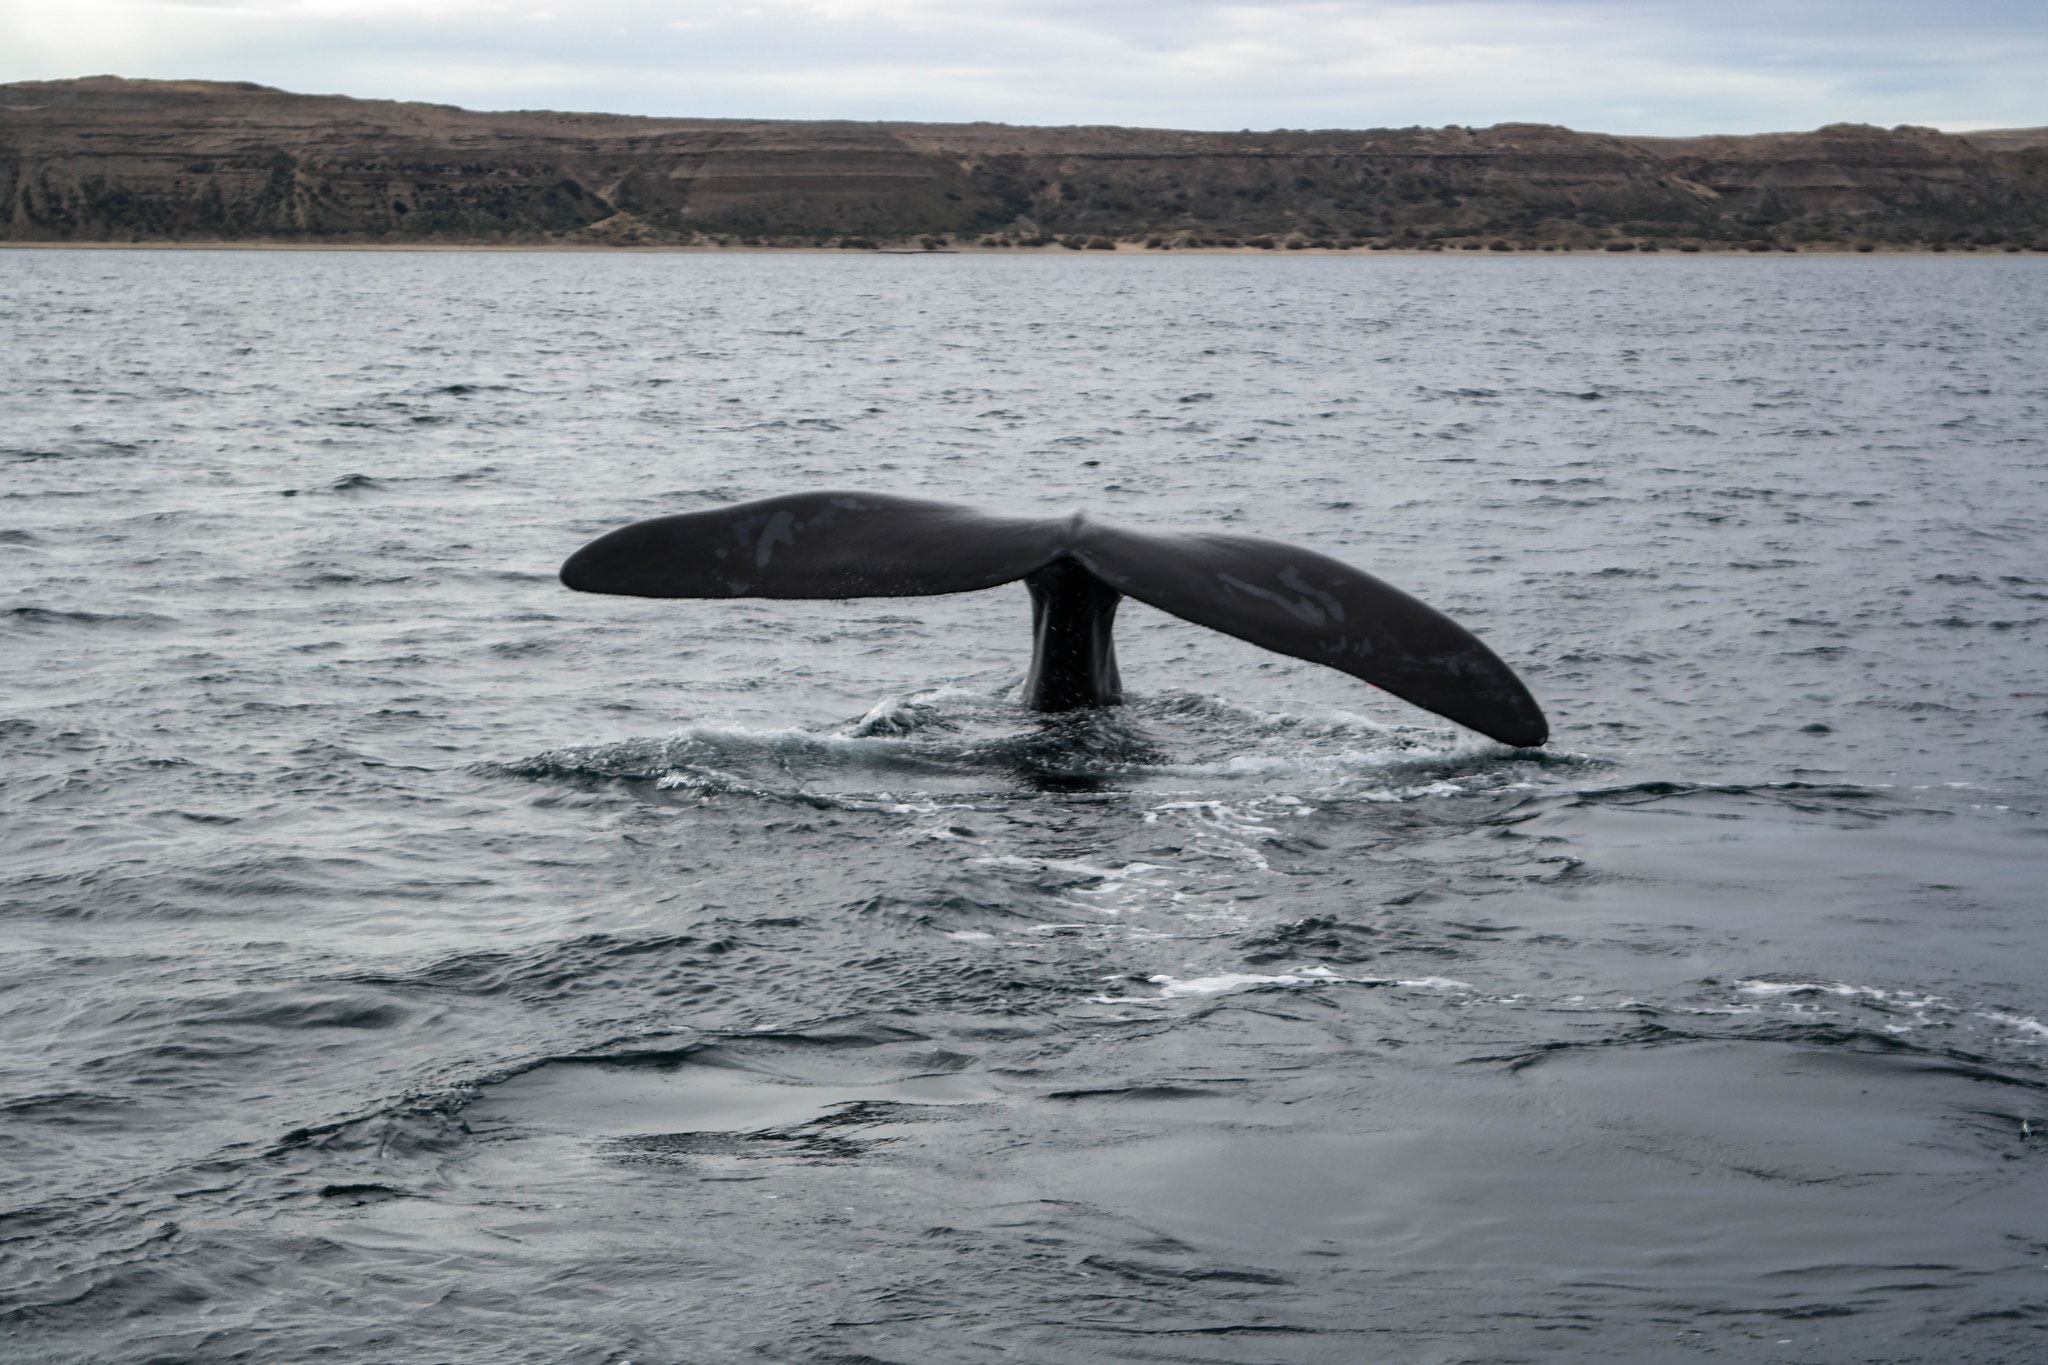 The tail fin of a southern right whale near the shore of the peninsula of Puerto Madryn.